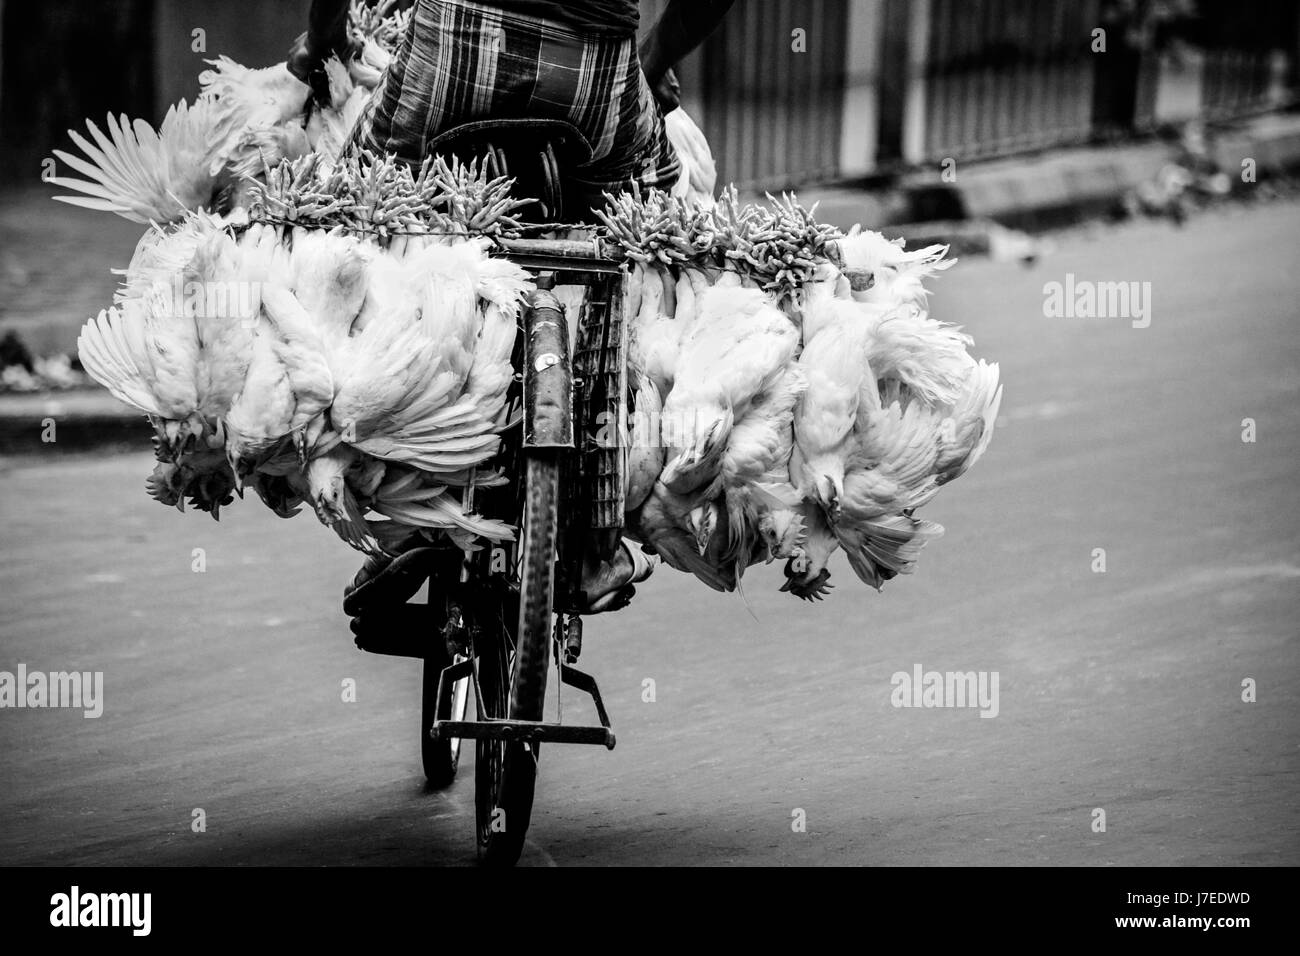 Gritty reportage in monochrome of Indian guy peddling bicycle on road in the city of Kolkata with live chickens - Stock Image